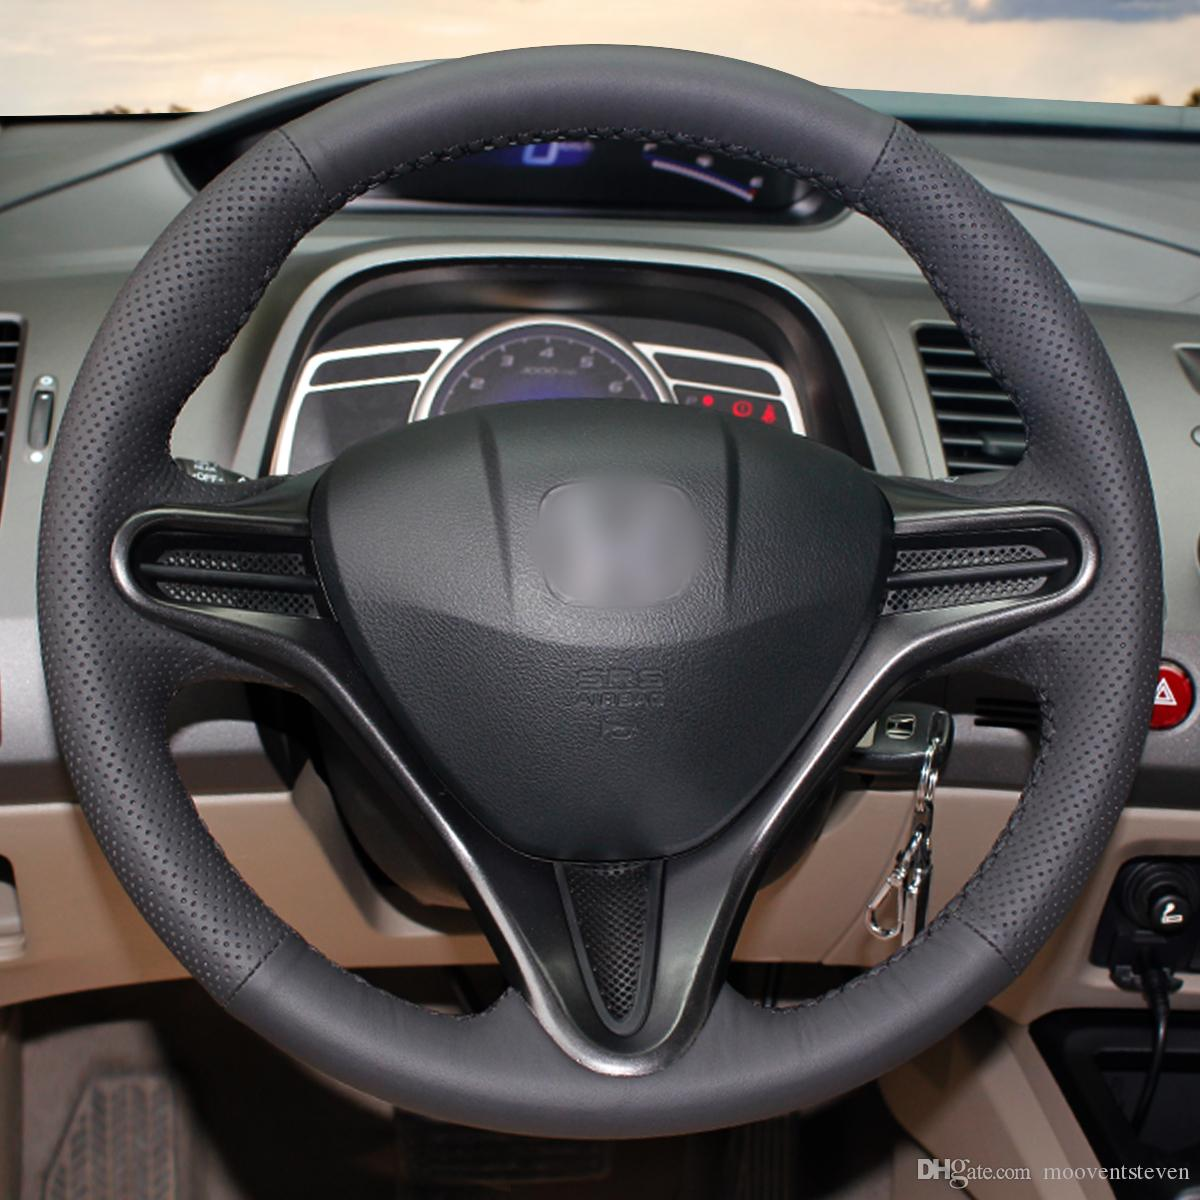 1 DIY Mewant Black Artificial Leather Steering Wheel Cover Wrap For Honda  Civic 8 Civic 2006 2007 2008 2009 2010 2011 3 Spoke Silicone Steering Wheel  Cover ...